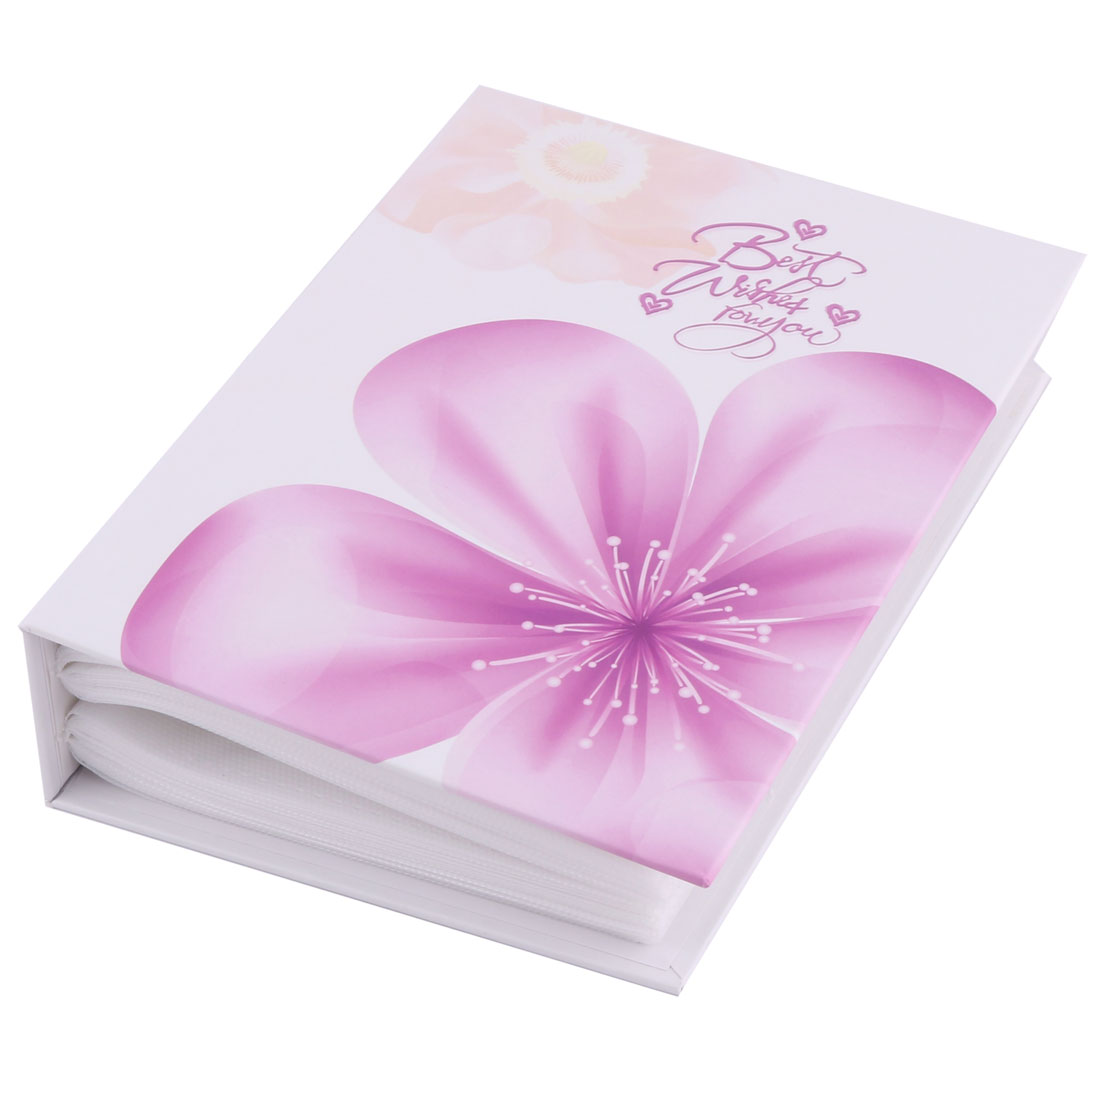 Cardboard Flower Print Travel Memo Collection Picture Book Photo Album Purple